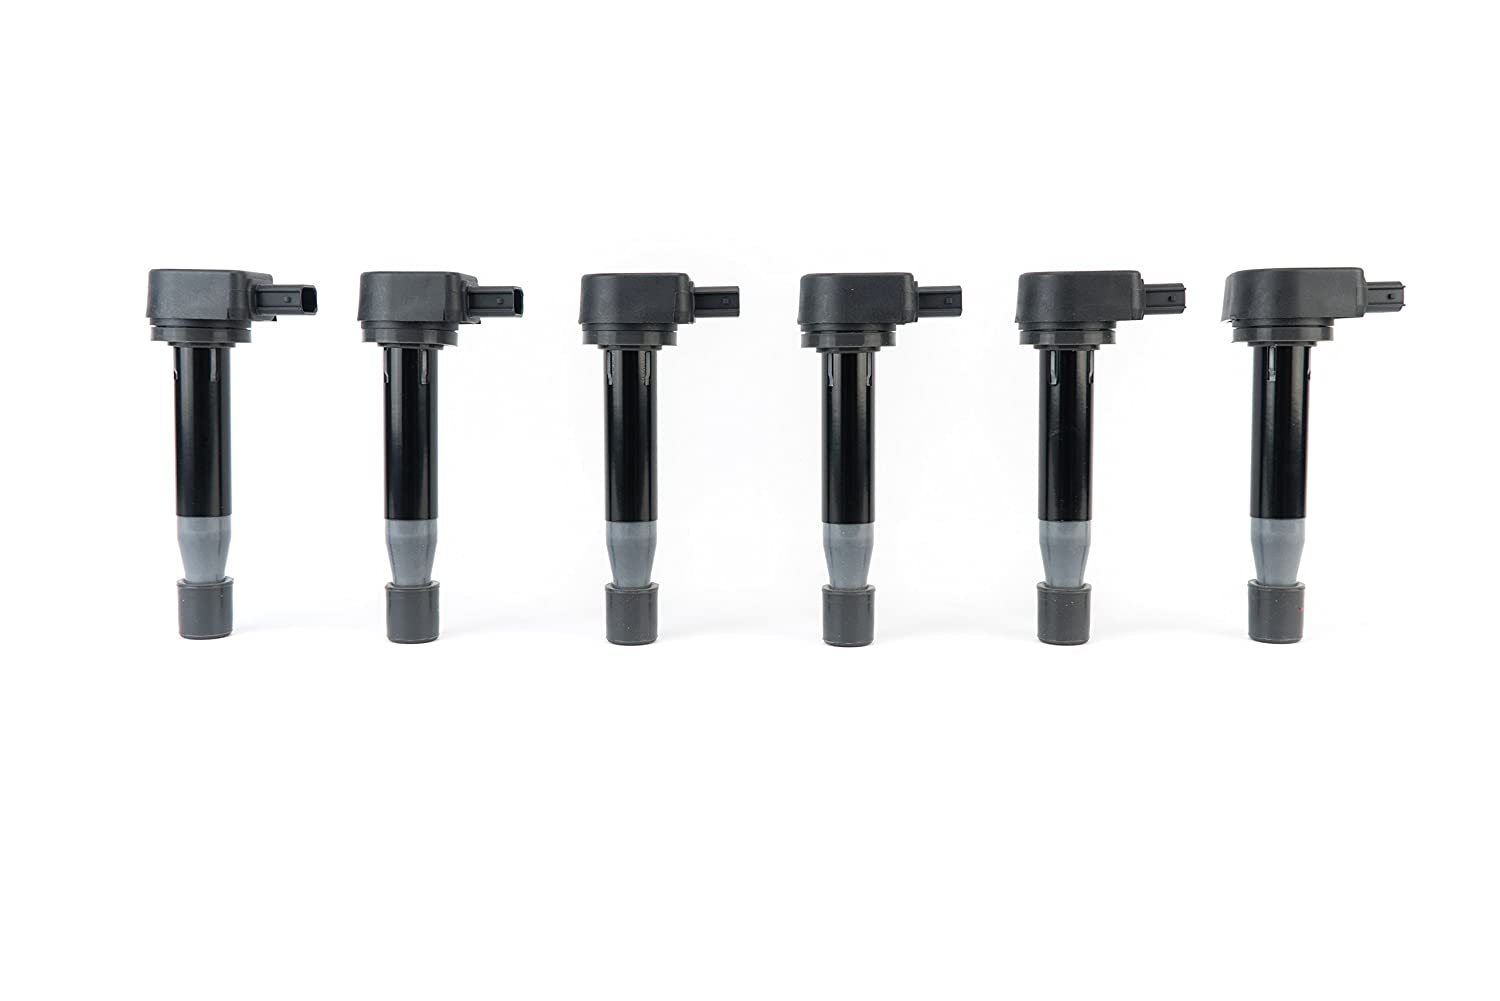 Ignition Coil Pack Set of 6 - Replaces# 610-58547B, 30520-RCA-A02 - Acura TL 3.2 V6 1999 - 2008 - Acura CL 2001 - 2003 - Acura RL 2005 - 2011 - Honda Odyssey 1999 - 2010 - Honda Accord V6 2000 - 2007 Image